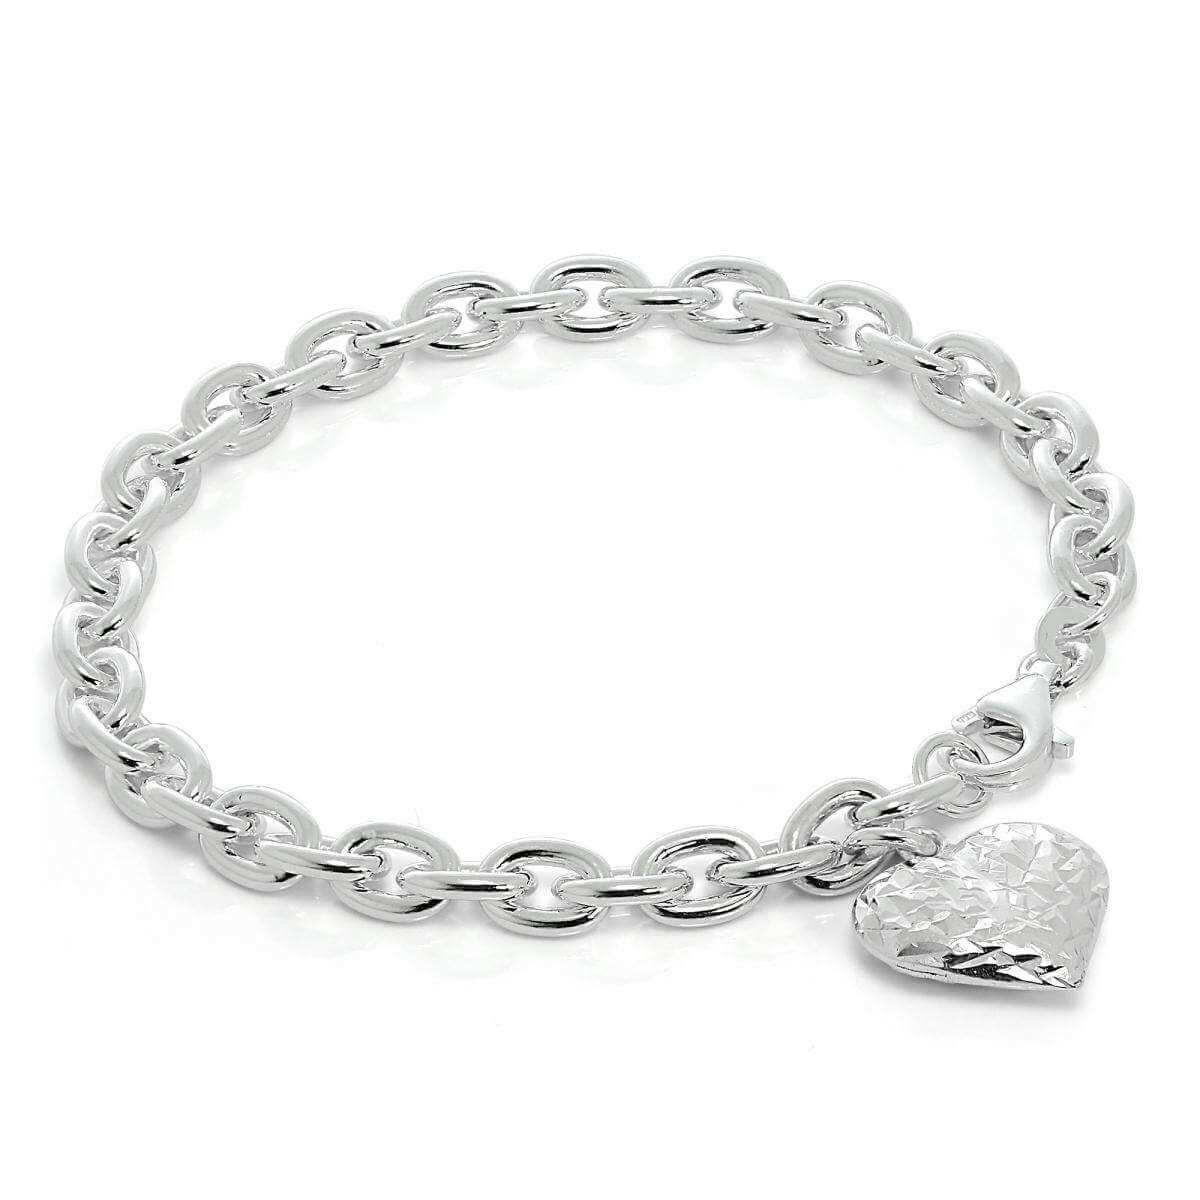 Heavy Sterling Silver Charm Bracelet with Diamond Cut Puffed Heart Charm